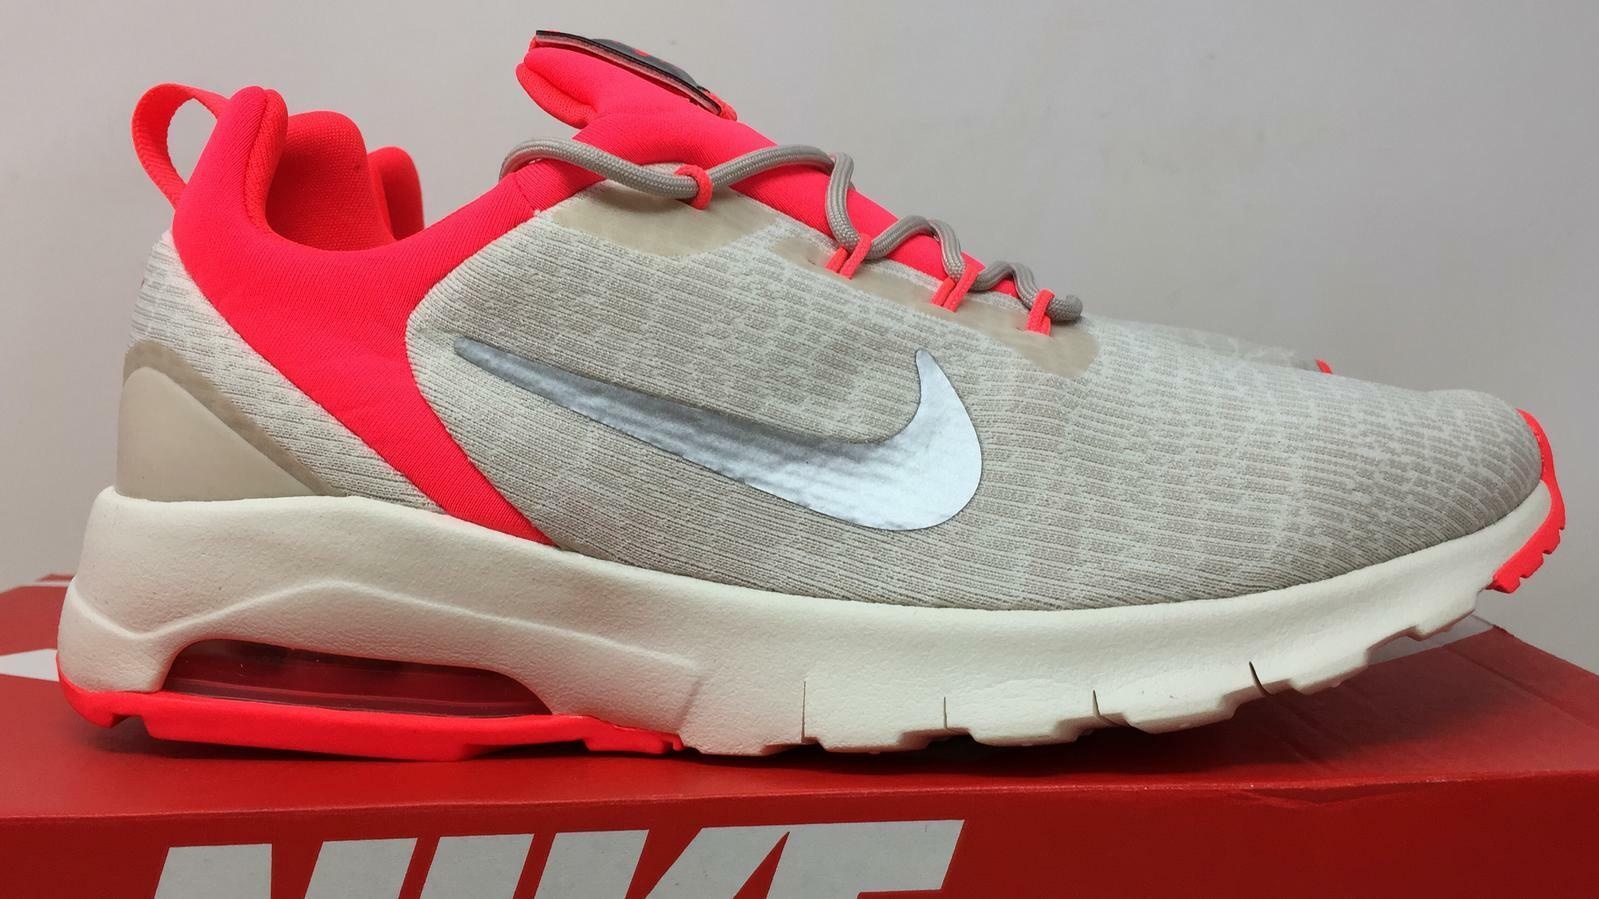 933d82a629b Nike Women s Air Max Motion Racer Athletic Shoes Size 6 for sale ...